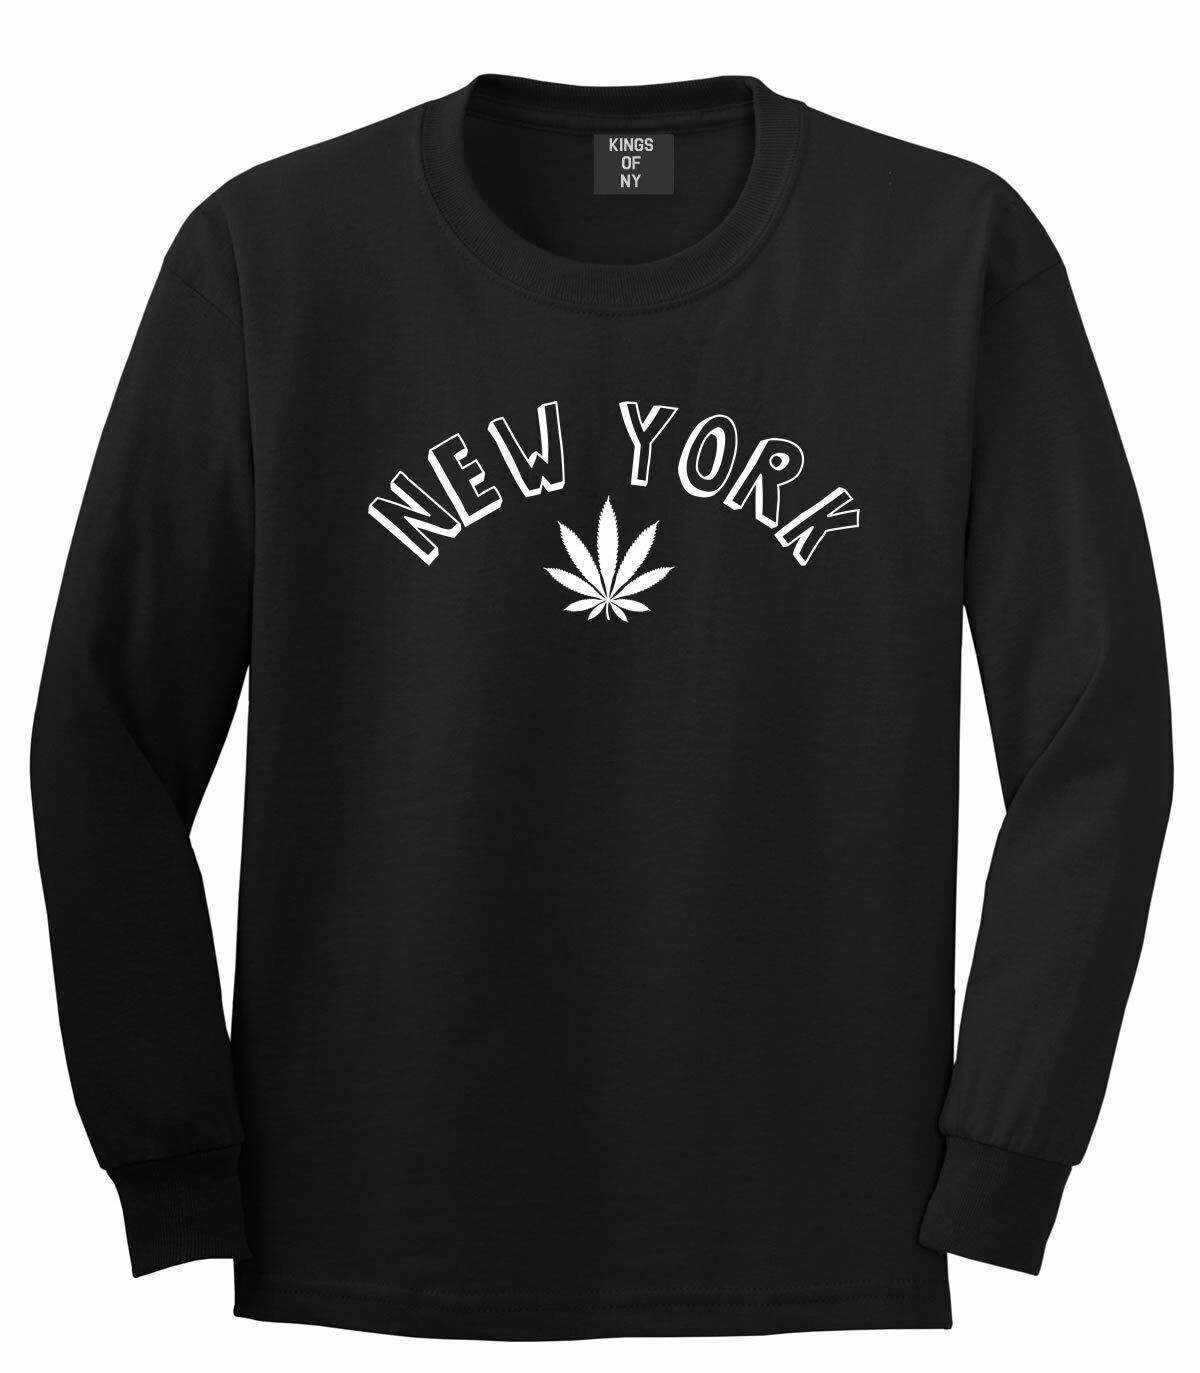 Marijuana Weed New York USA State NY Long Sleeve T-Shirt 1